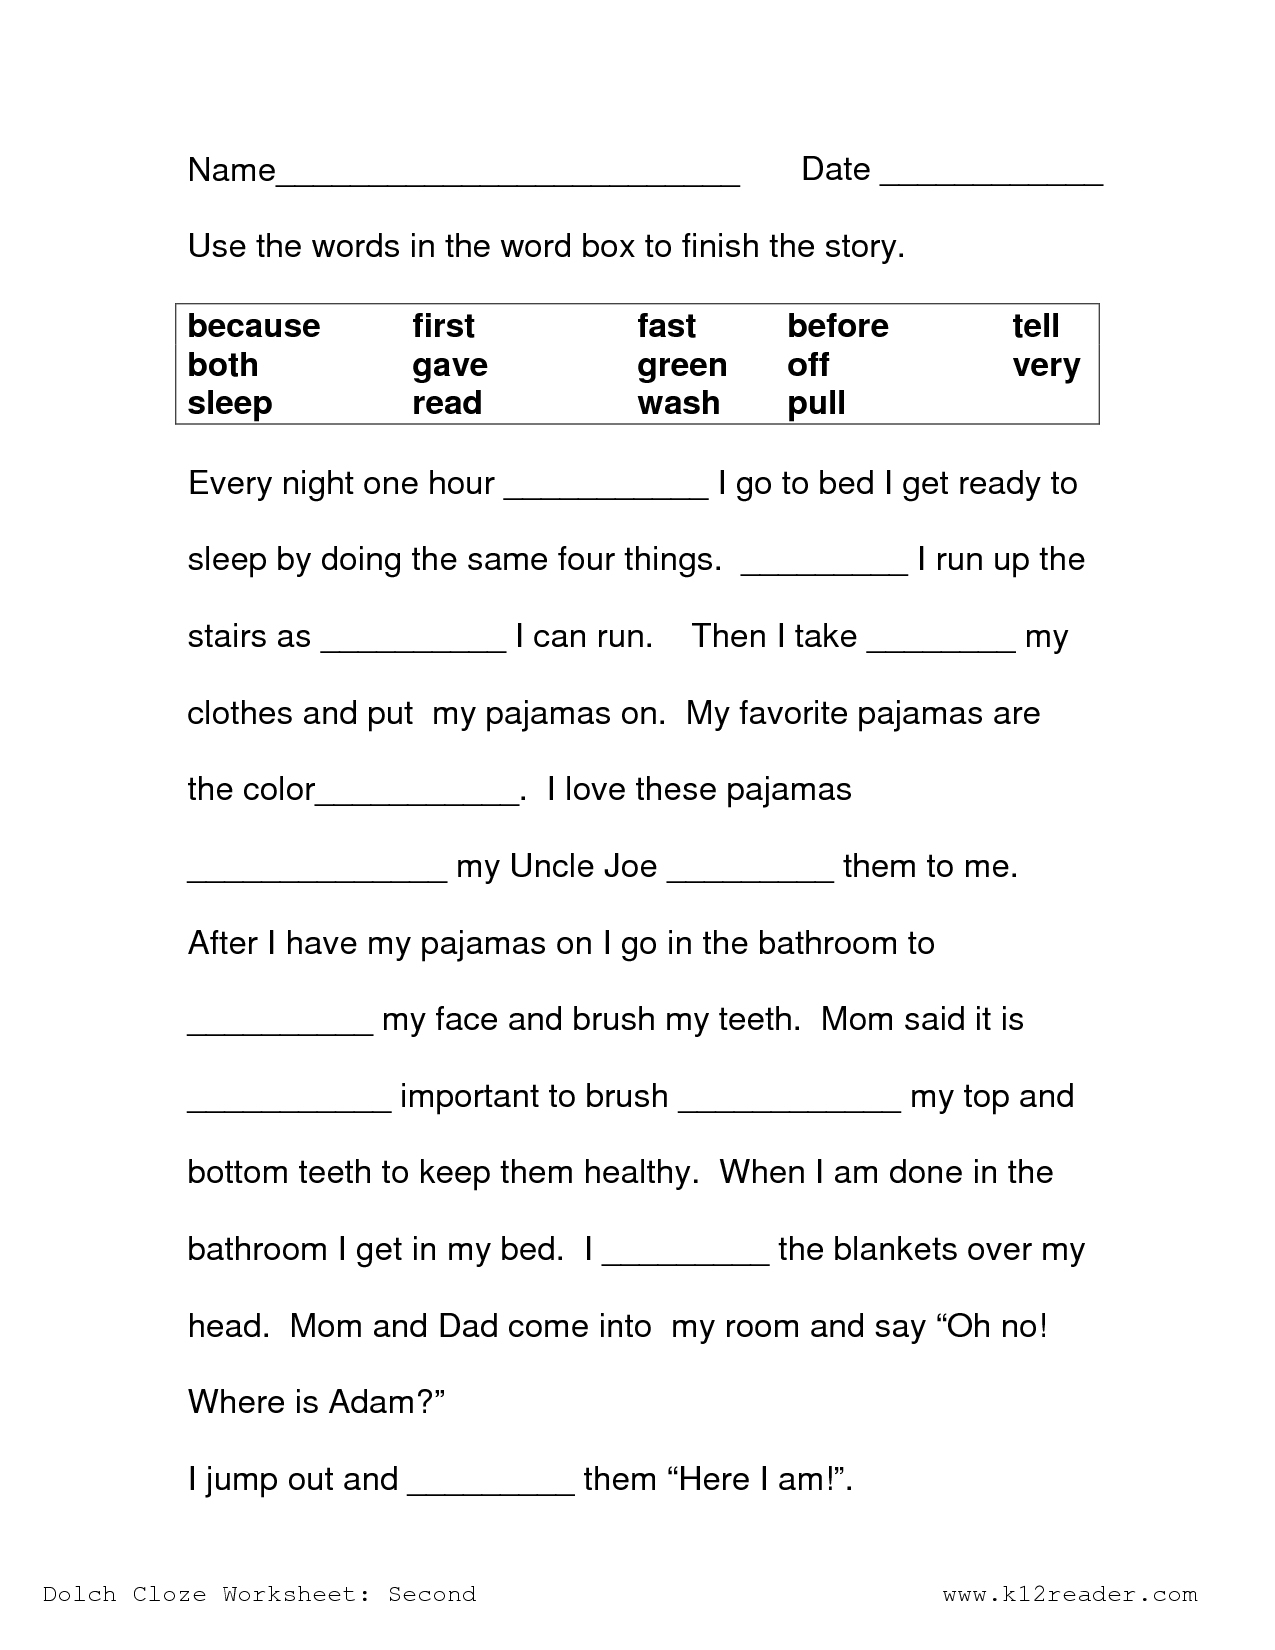 Math Worksheet: 2Nd Grade Science Worksheets Free Printable Easy - 4Th Grade Crossword Puzzles Printable